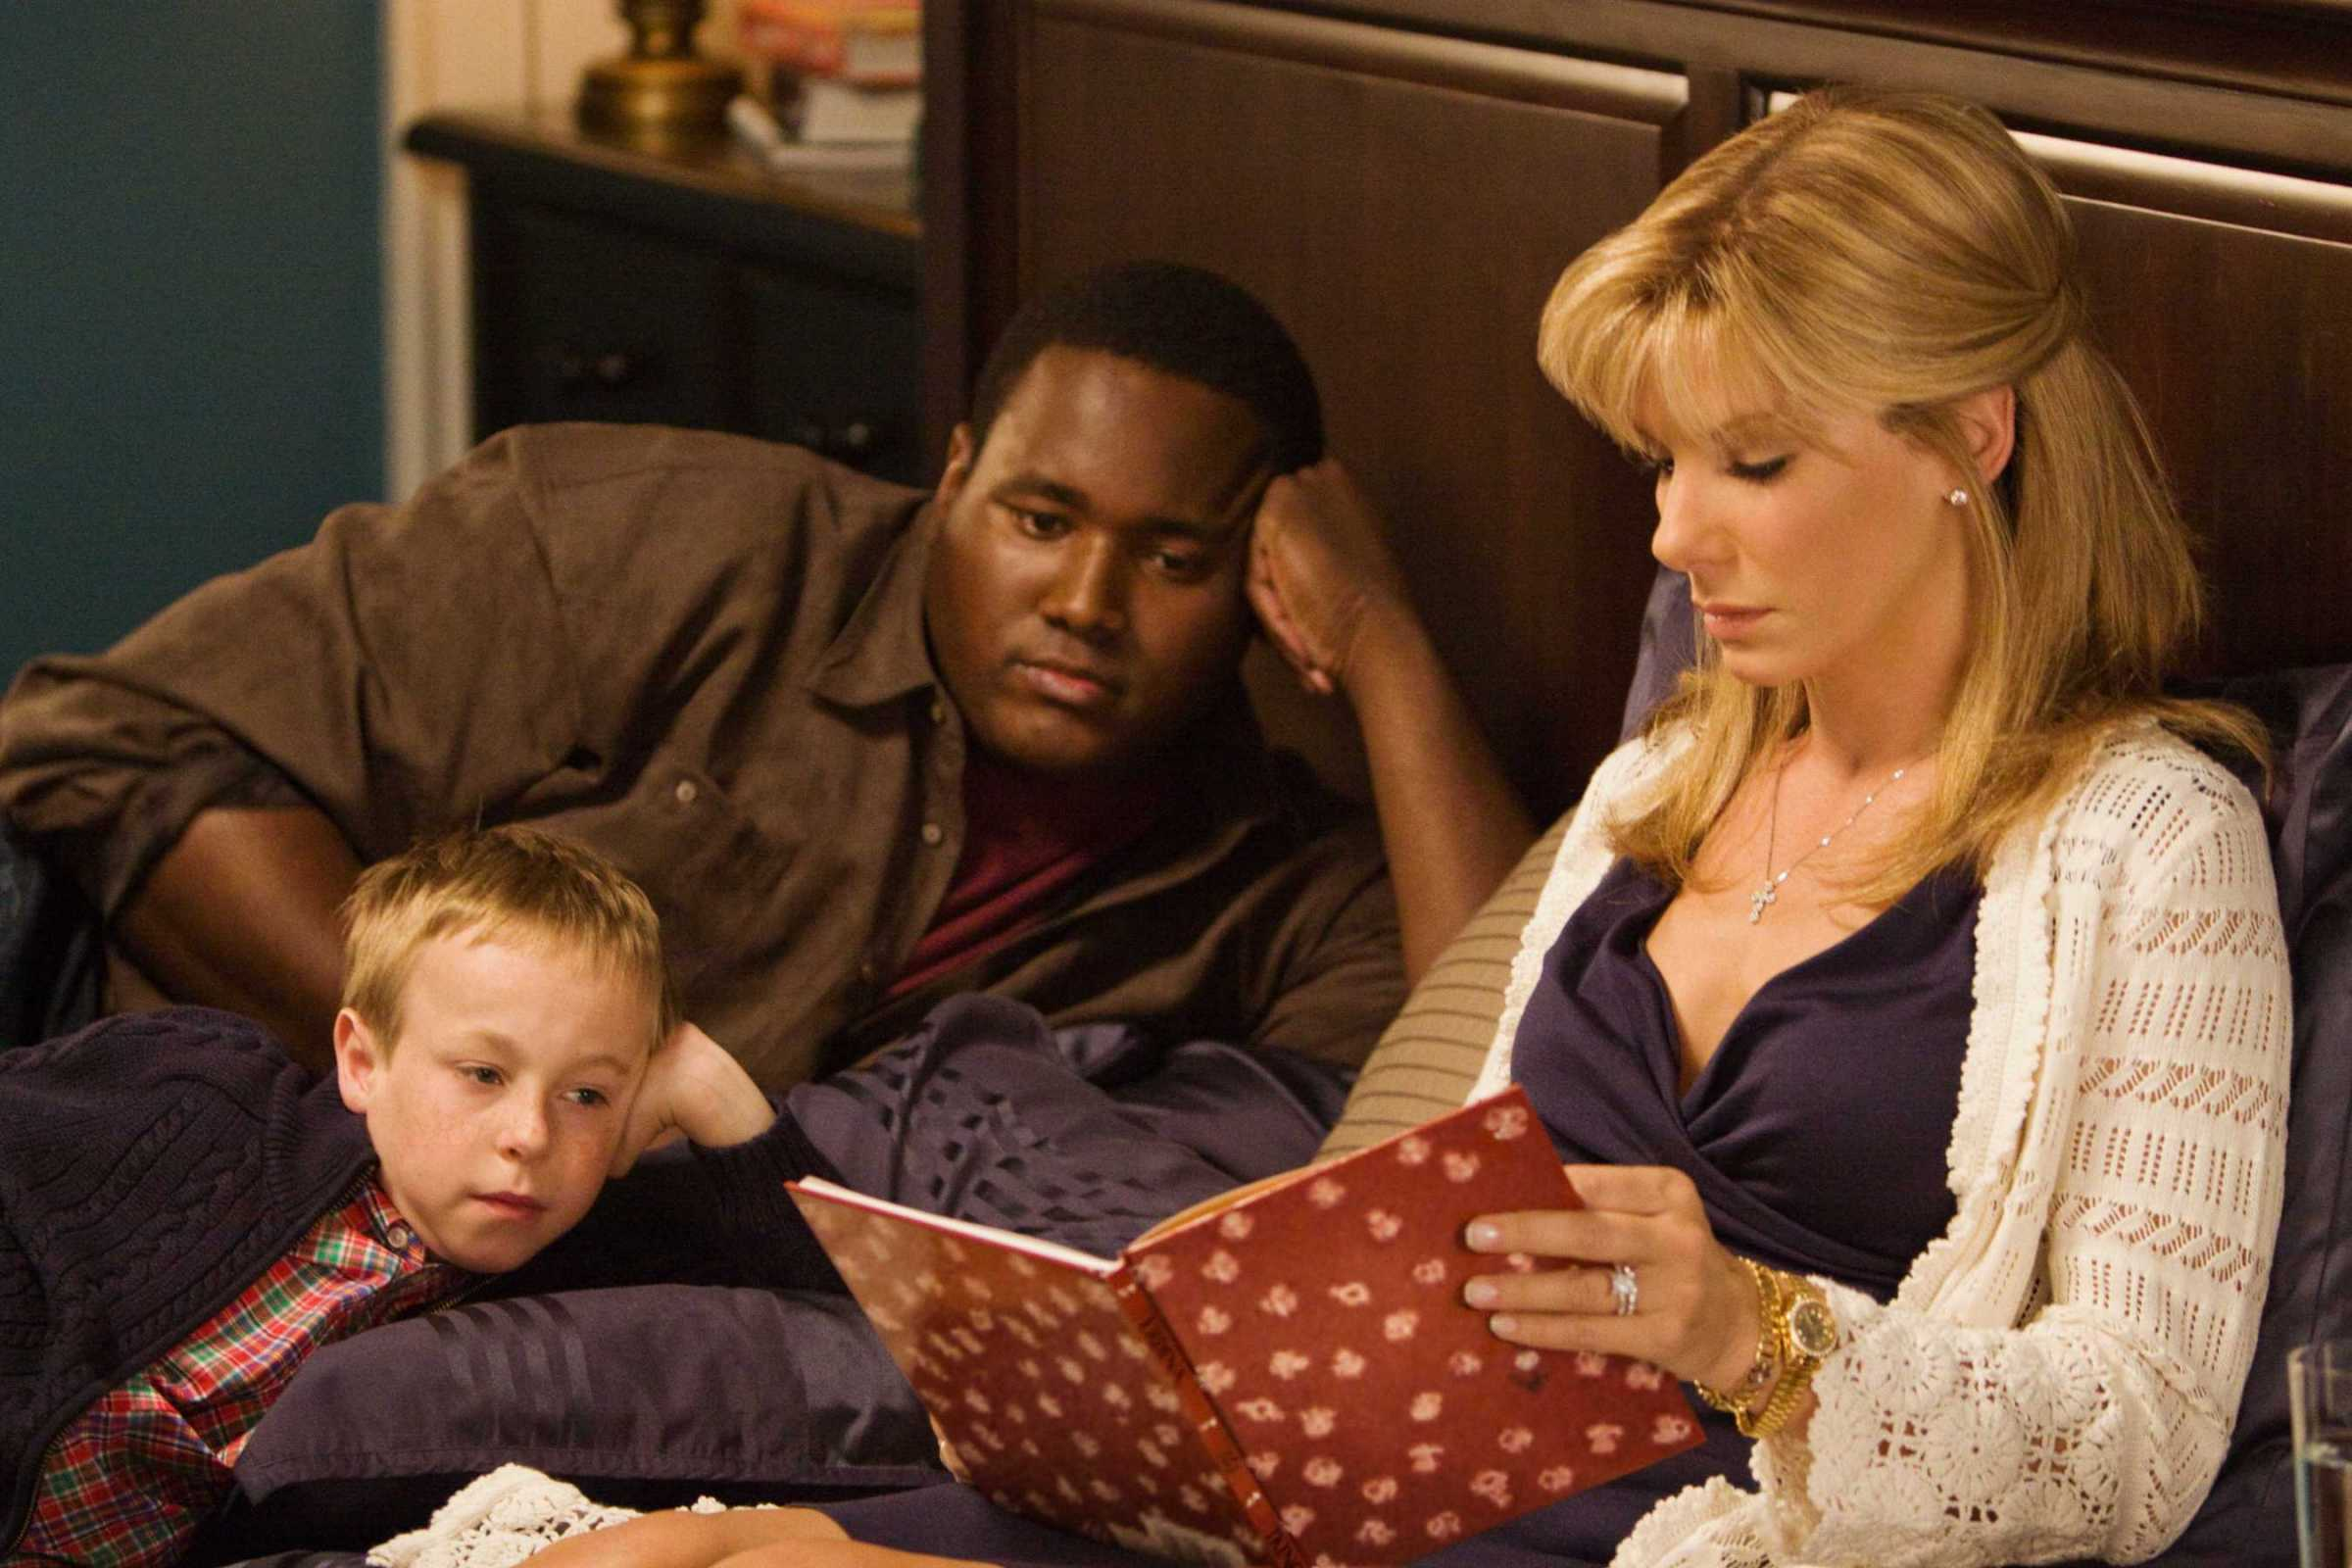 BS-01962r (L-r) JAE HEAD as S.J., QUINTON AARON as Michael Oher and SANDRA BULLOCK as Leigh Anne Tuohy in Alcon EntertainmentÕs drama ÒThe Blind Side,Ó a Warner Bros. Pictures release.